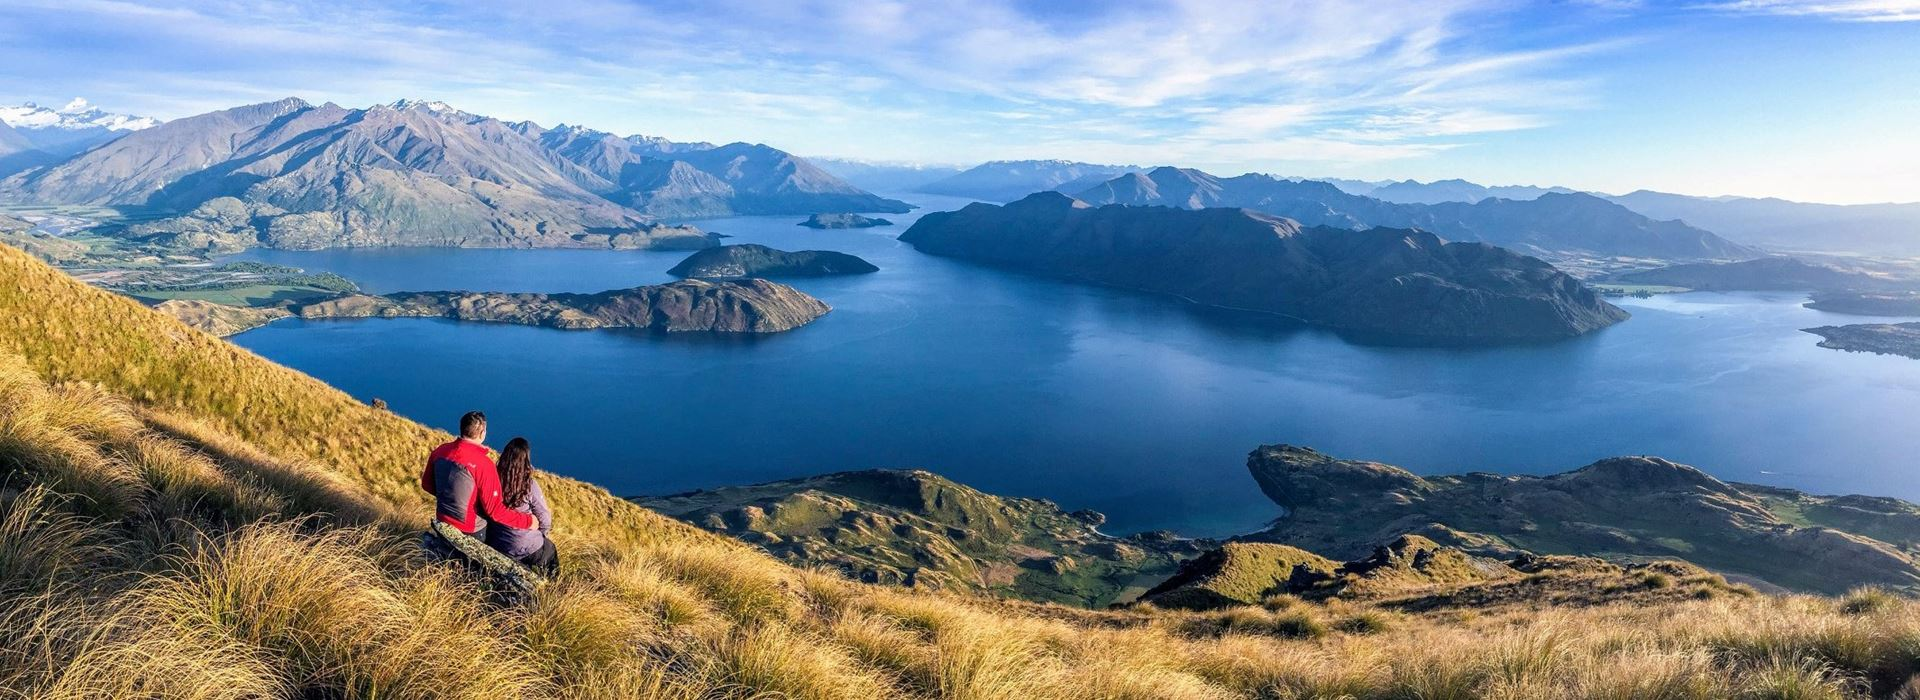 15 Day - Discover New Zealand Tour